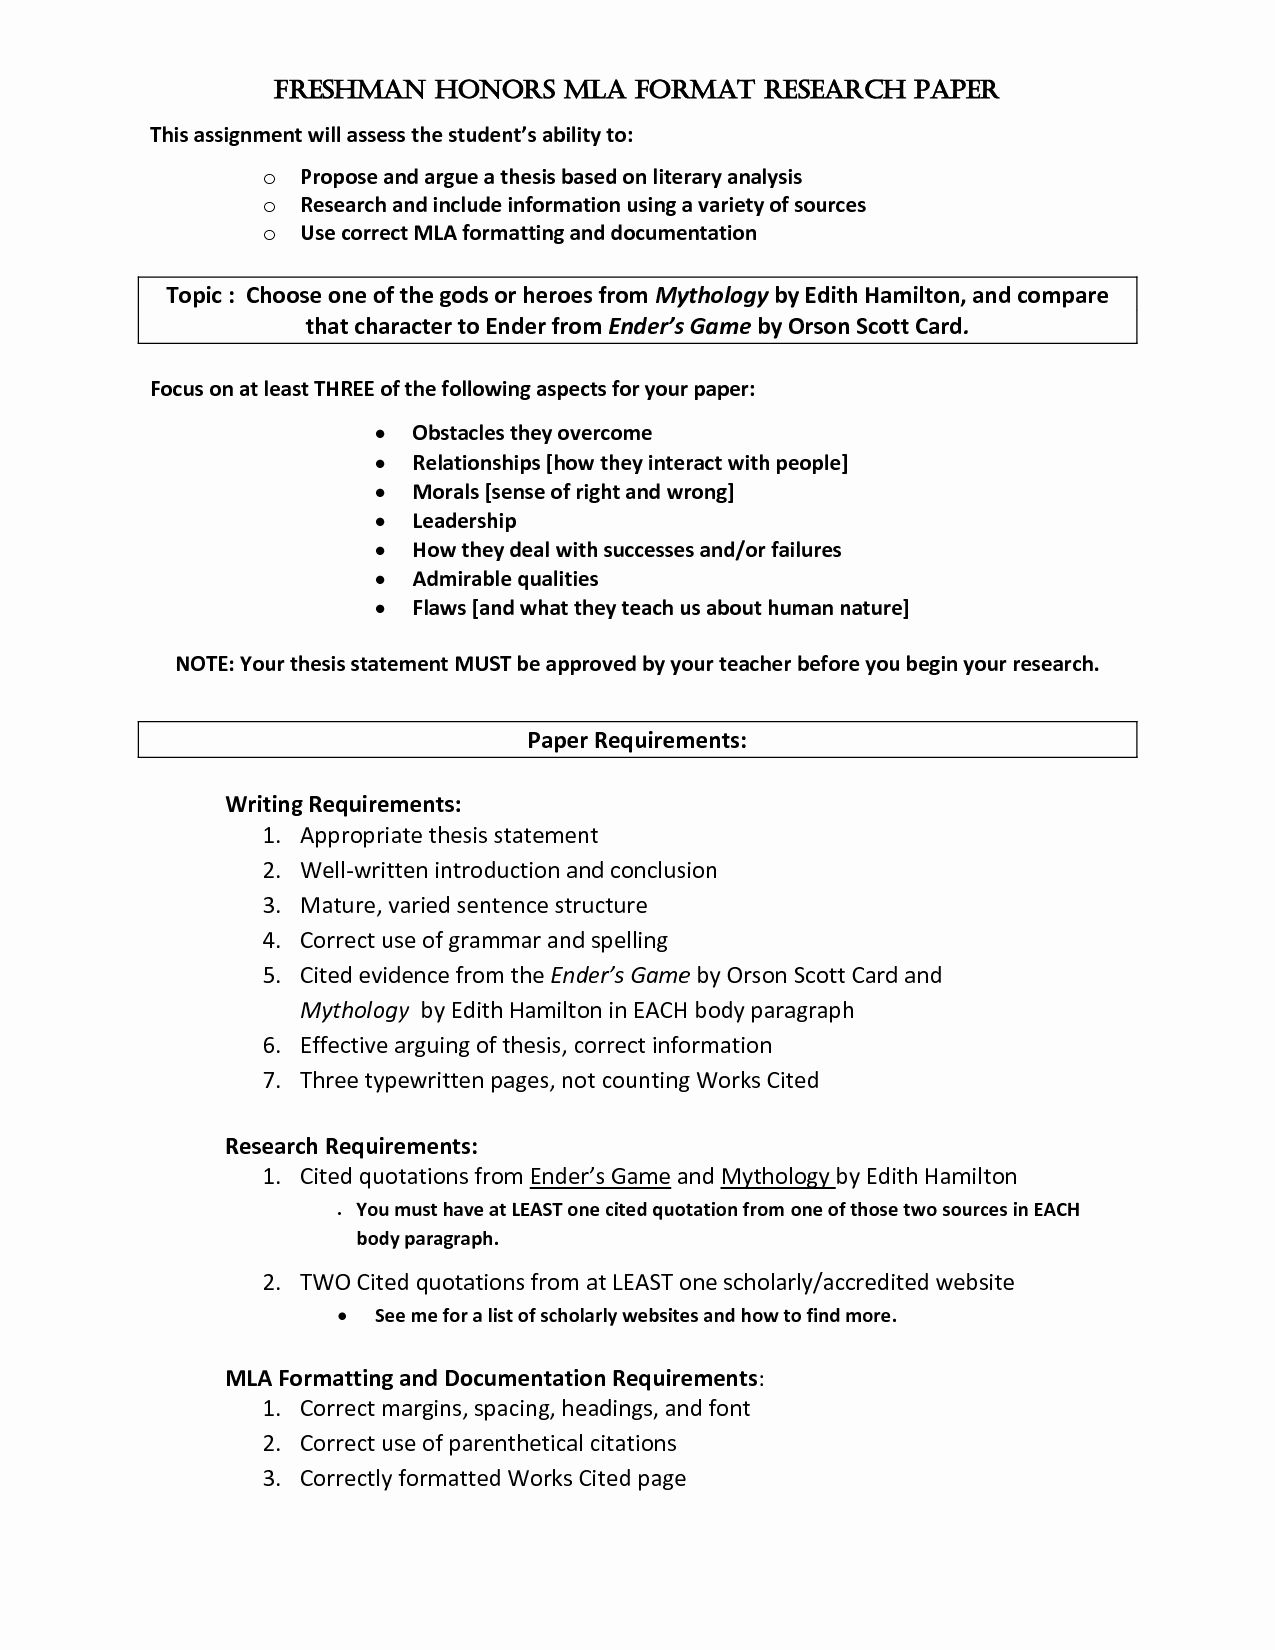 Essay Outline Mla Awesome Political Science Research Paper Guidelines Research Paper Essay Writing Assignments